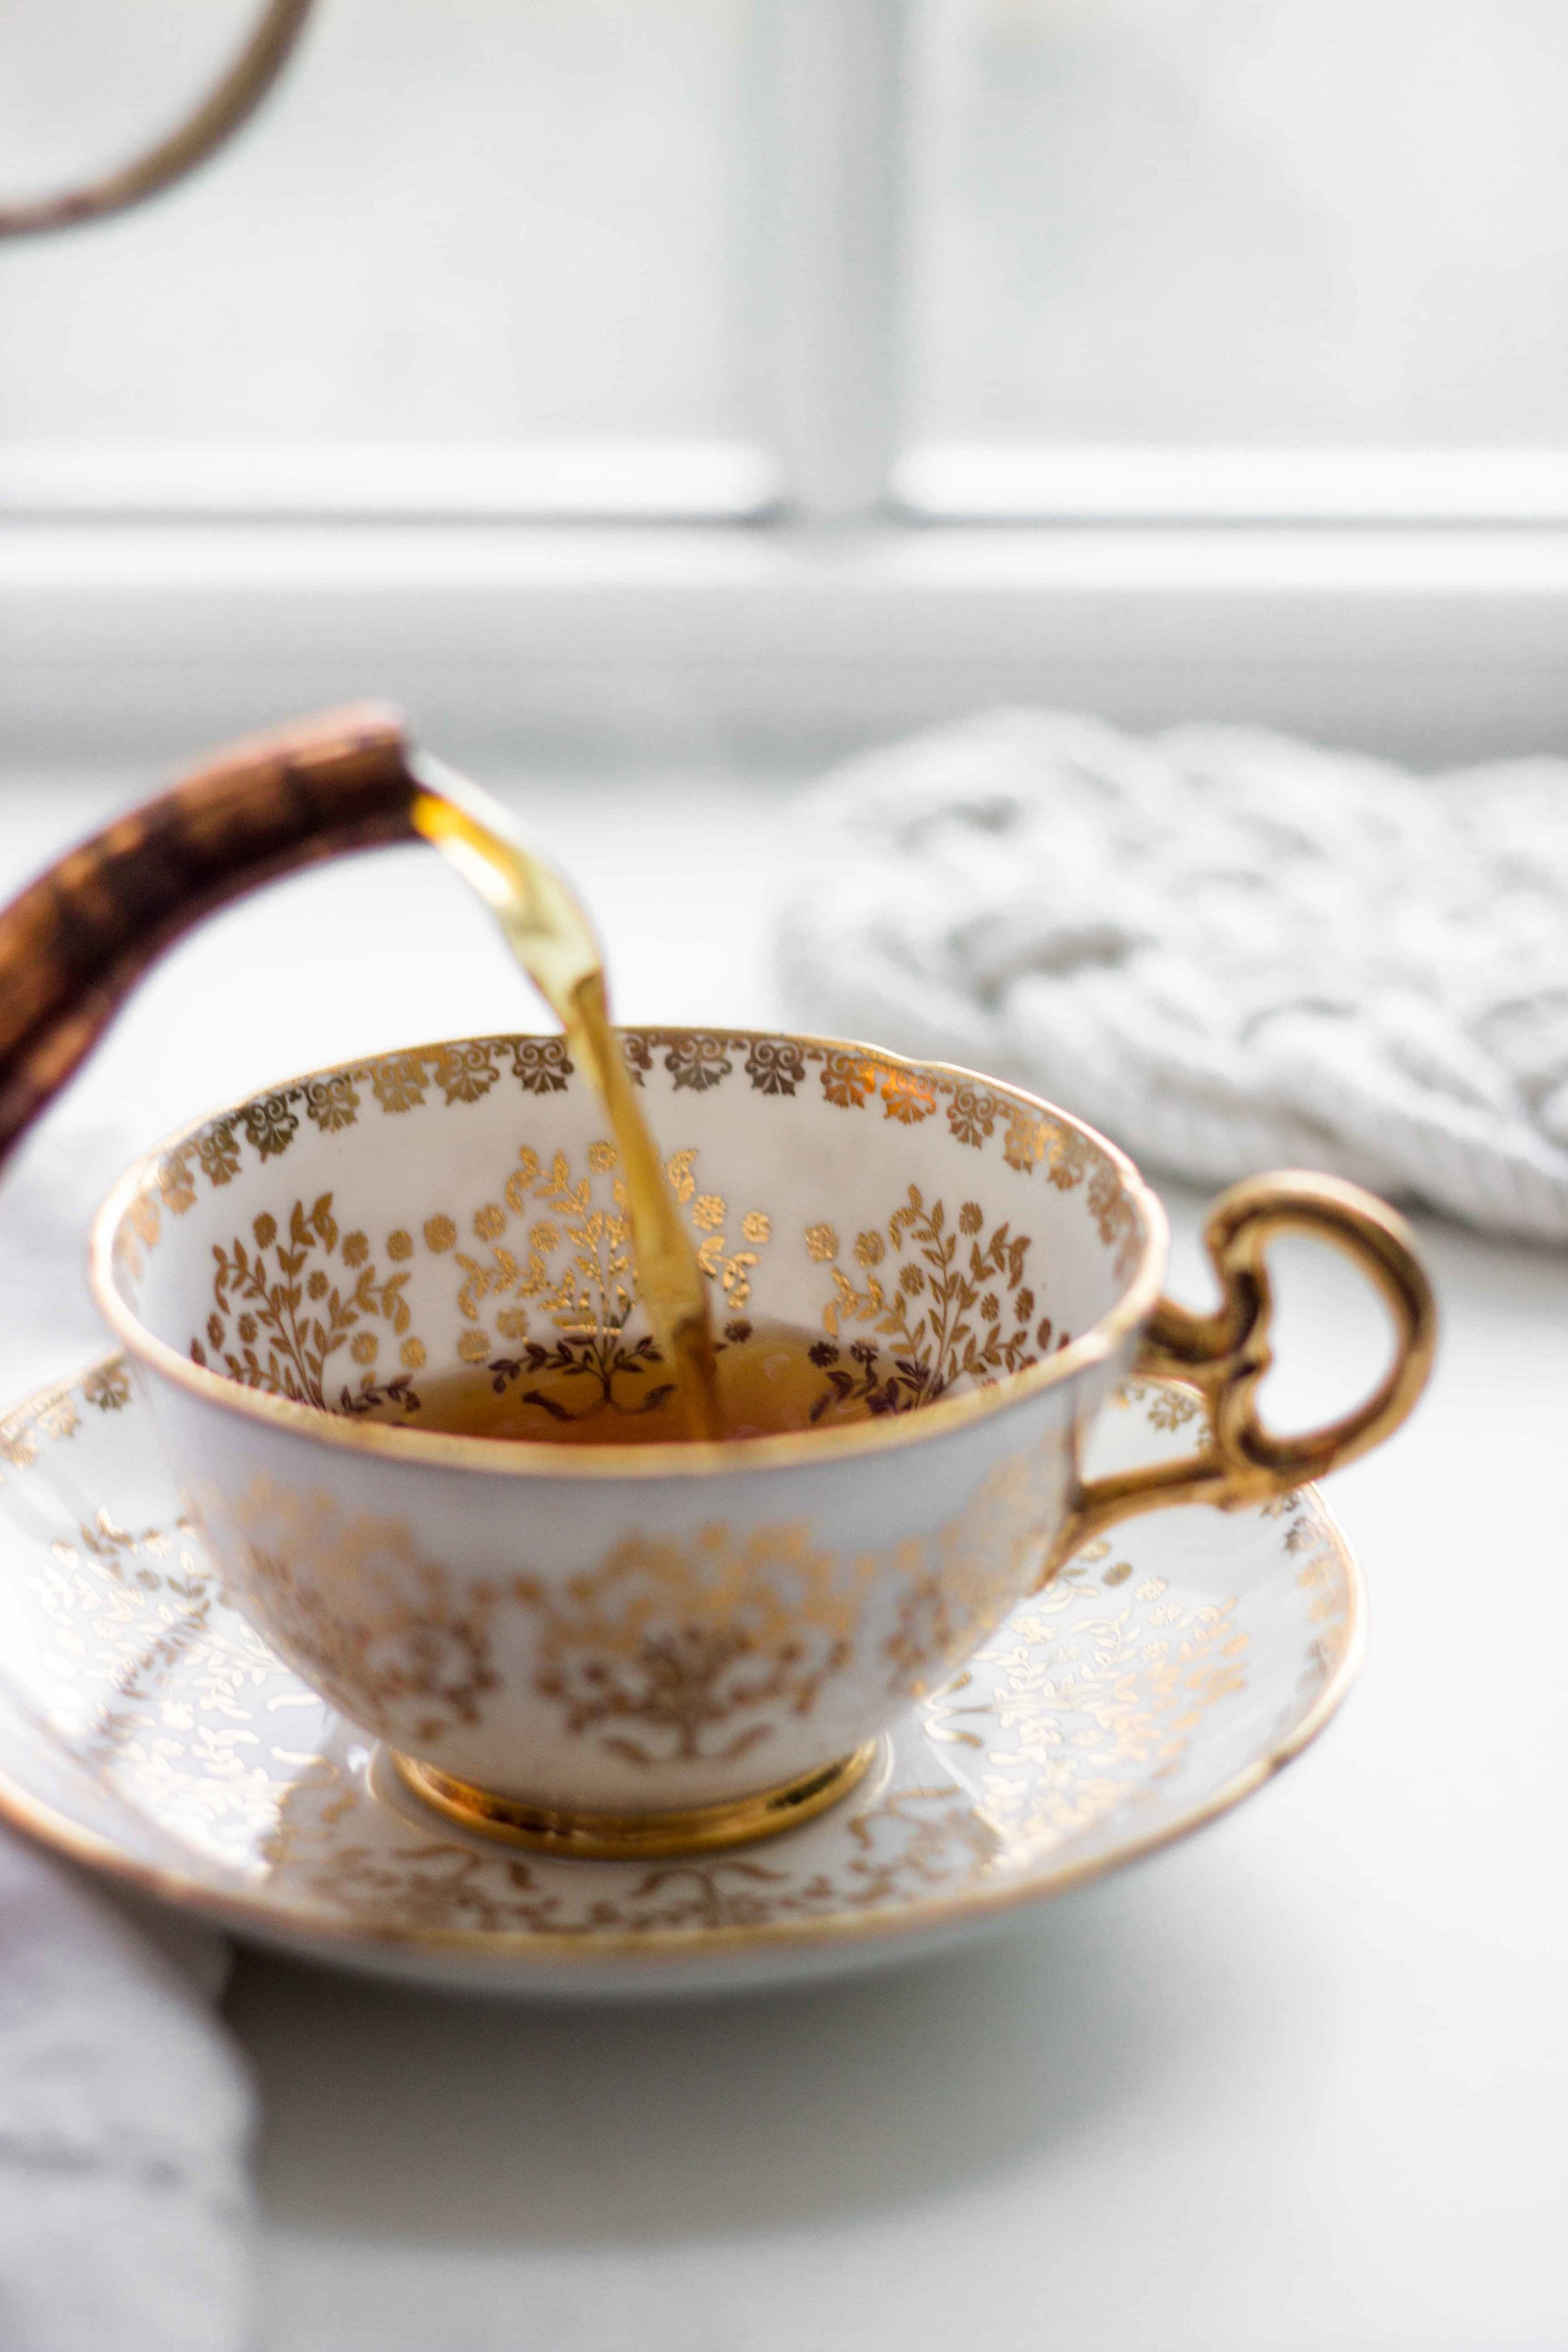 Sustainable And Ethical Tea - Arbor Teas - The Well Essentials